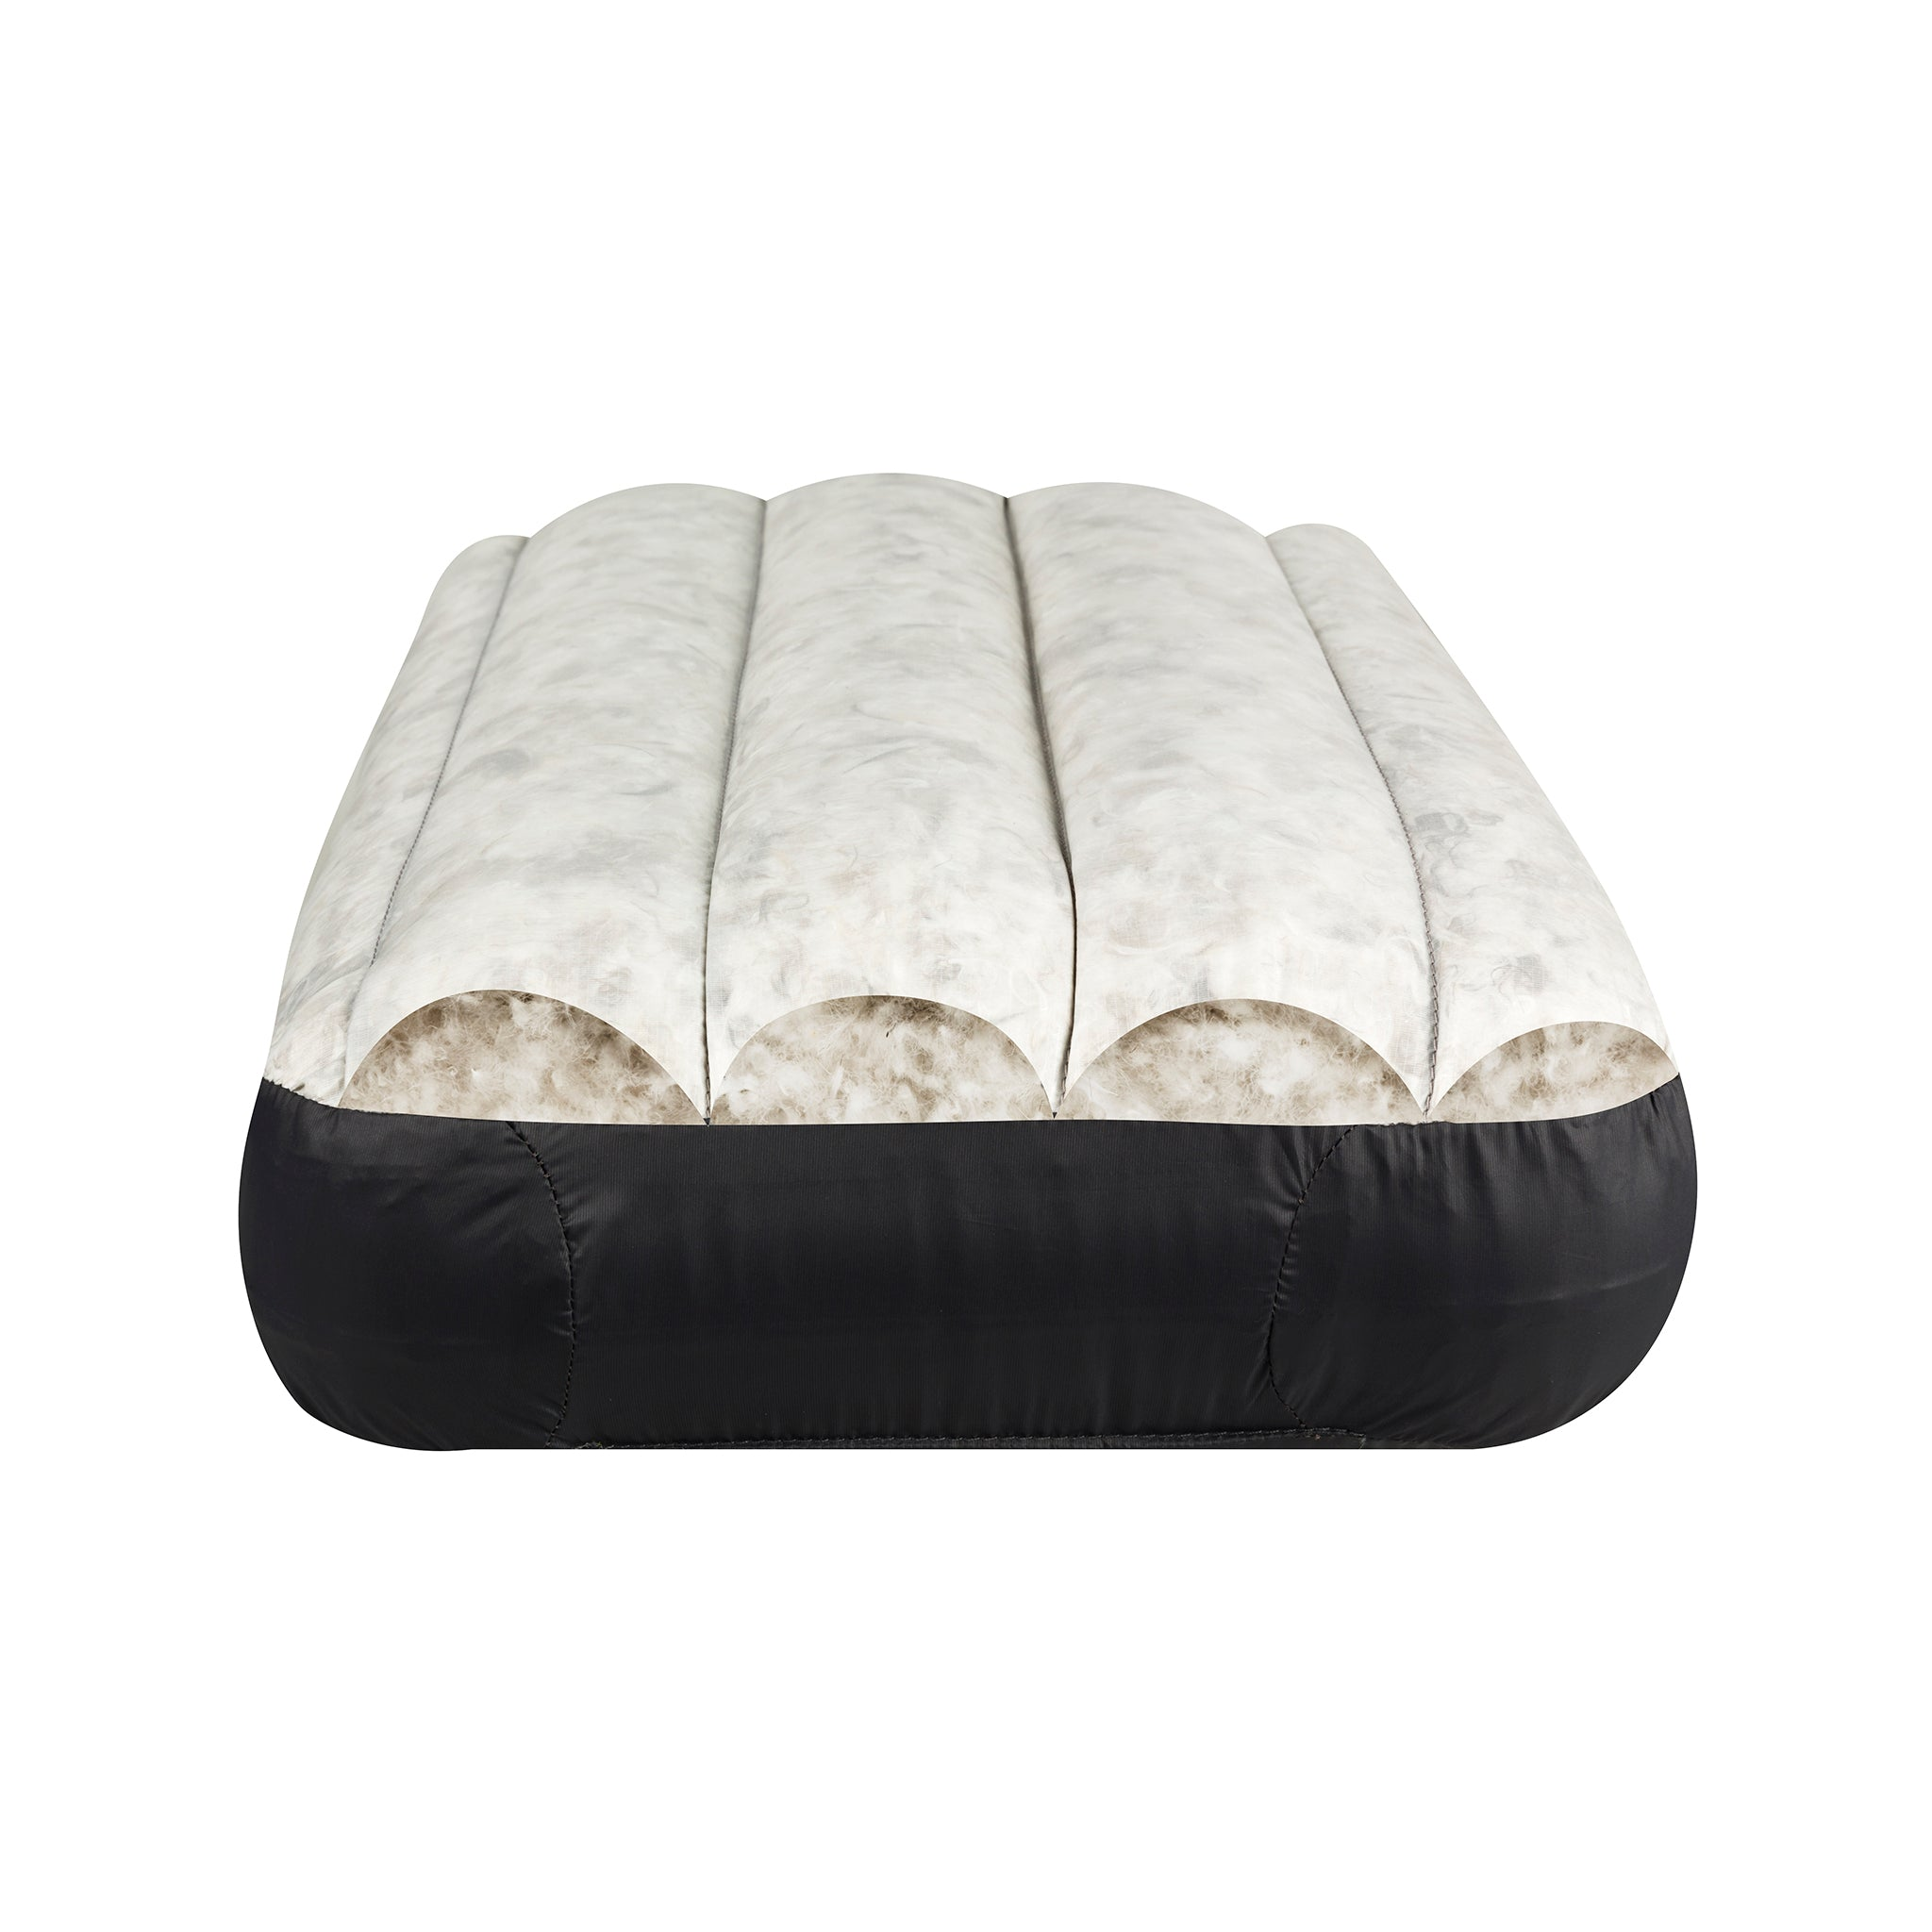 Tent by PROGRESSIVE ONLINE Inflatable Sleeping Mattress Airbed Air bed With Attached Self-Inflating Pillow for Hiking Compact /& Moisture-proof Camping Ultralight Air Mattress//Pad Backpacking